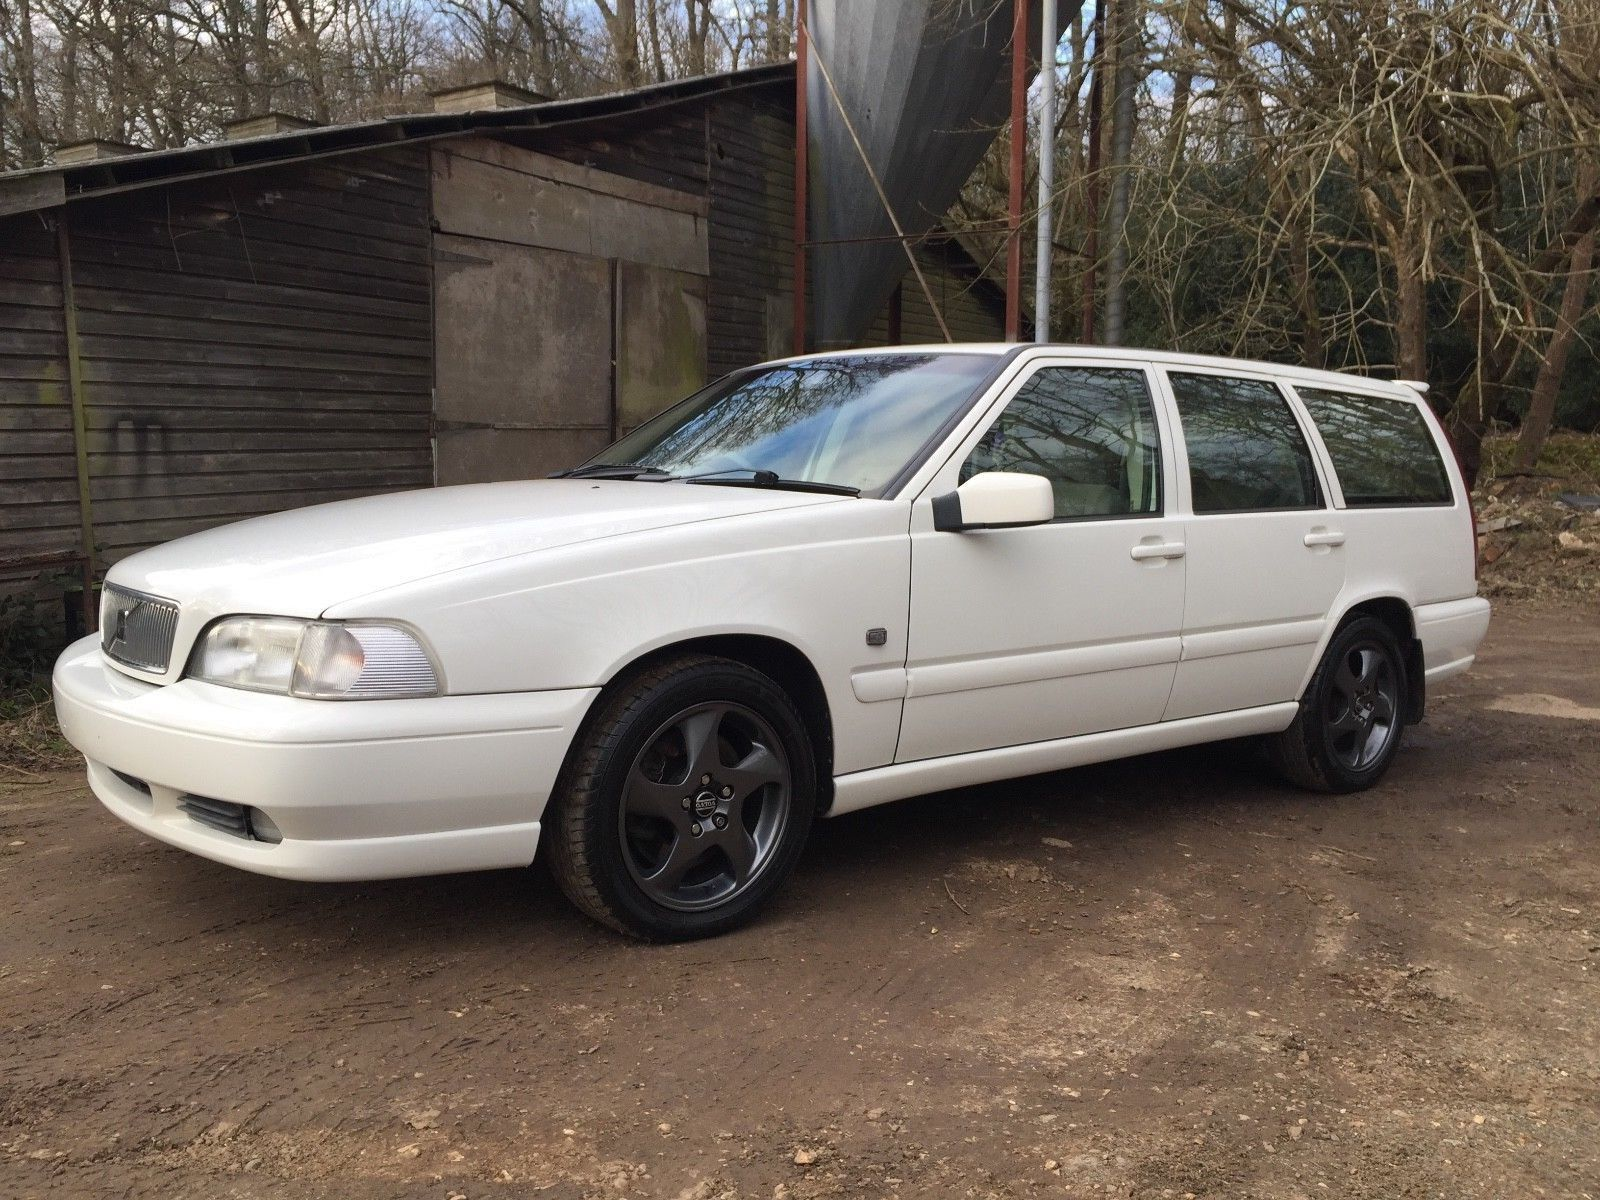 eBay: VOLVO V70 T5 AUTOMATIC ESTATE R FSH 2 OWNER 850 SIMPLY SUBLIME